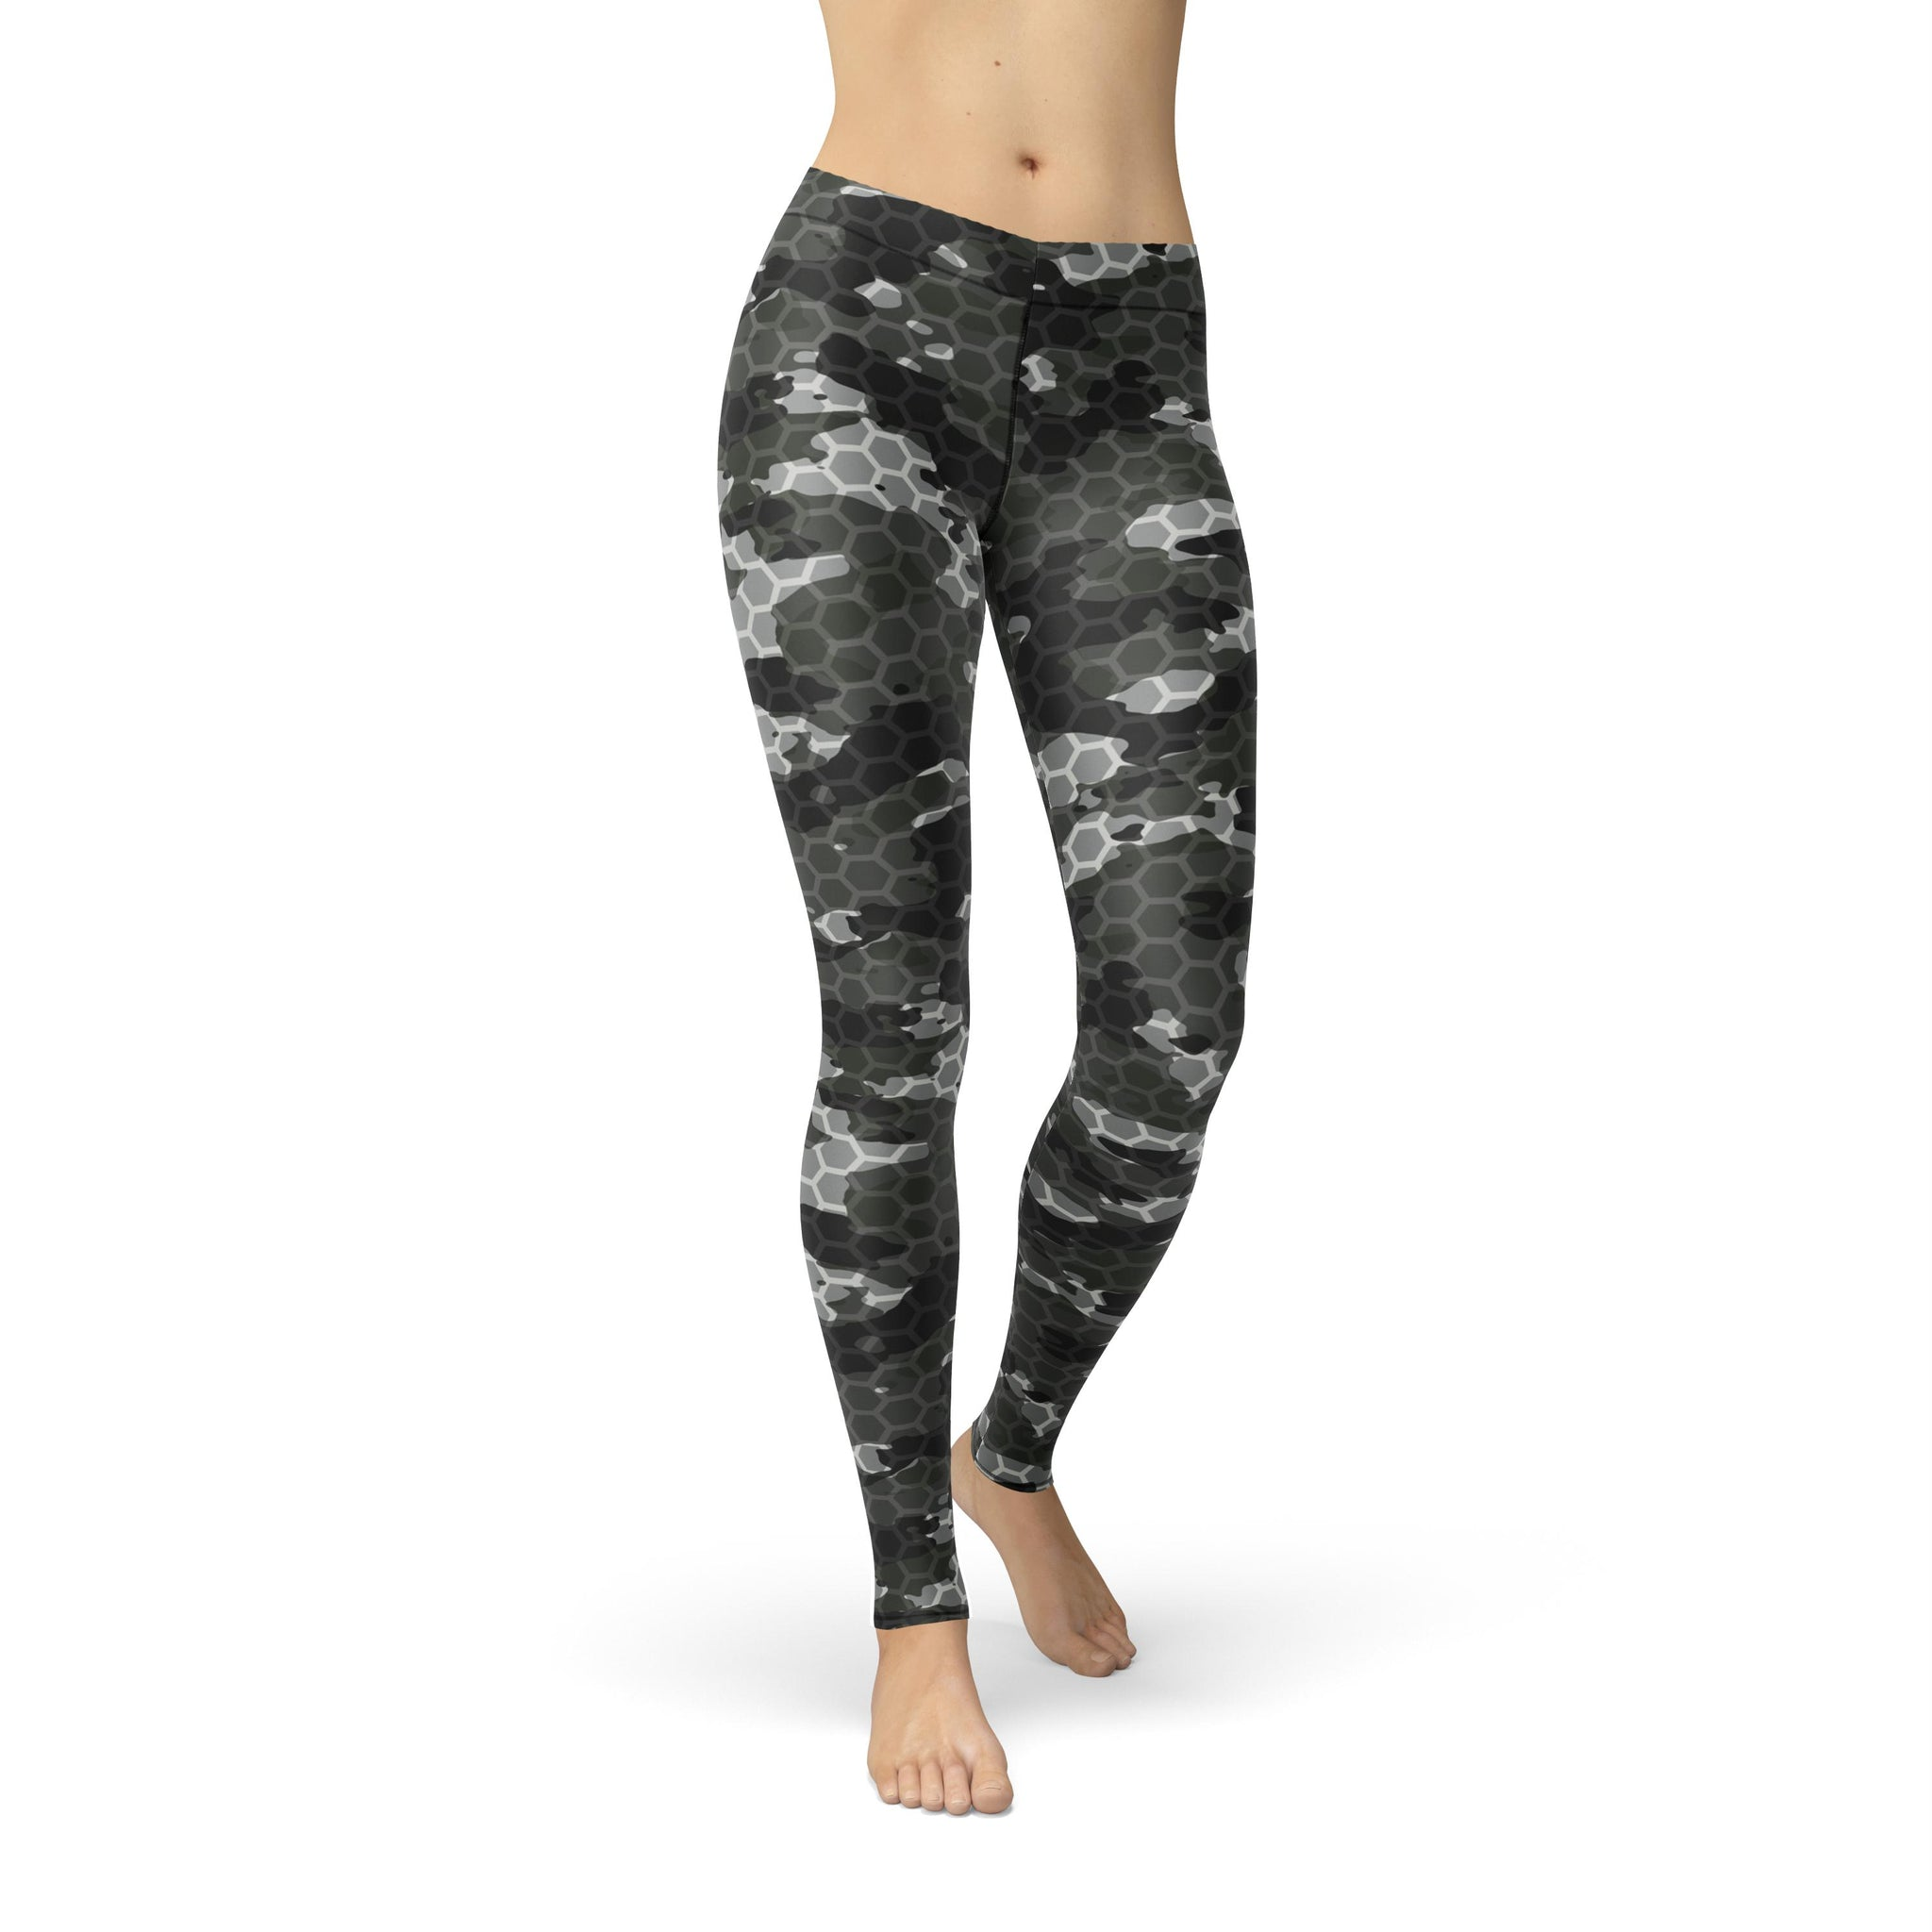 Gentle Mid-Rise Black Rush Camouflage Legging